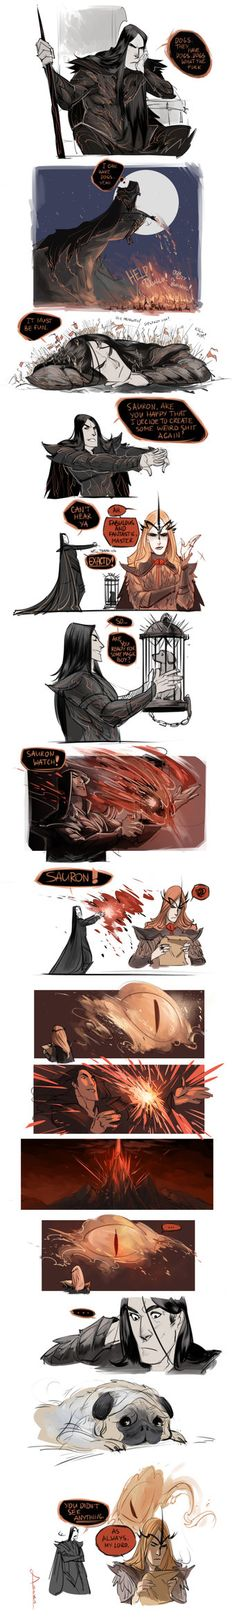 DoS questions: Pugs in Middle-Earth? by Phobs on DeviantArt Sauron is really tired of Melkor's sh*t